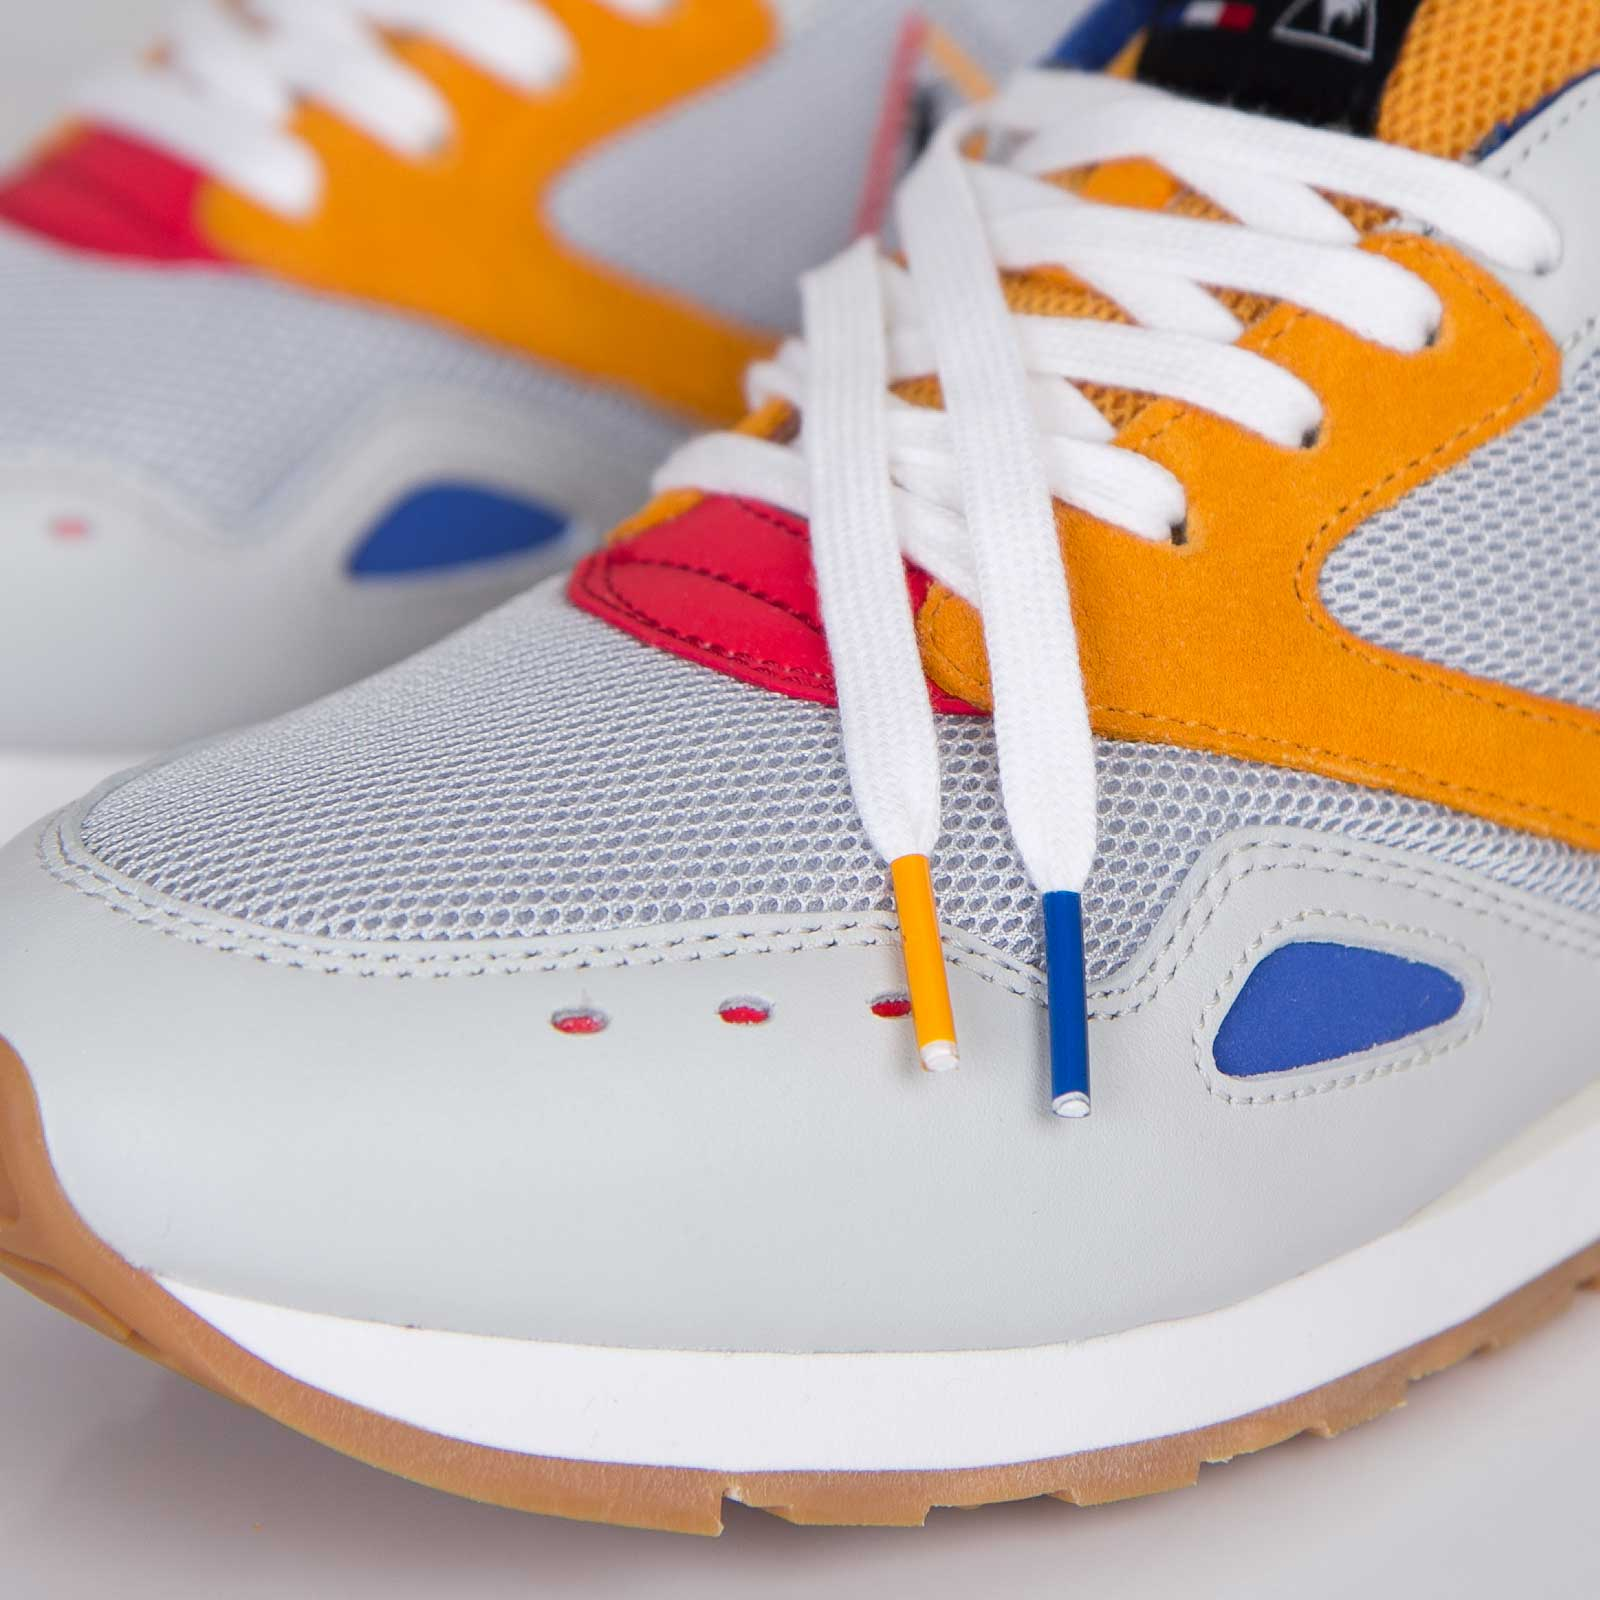 timeless design 8268c e8c1b Le Coq Sportif Flash Crooked Tongues - 1321800 - Sneakersnstuff   sneakers    streetwear online since 1999